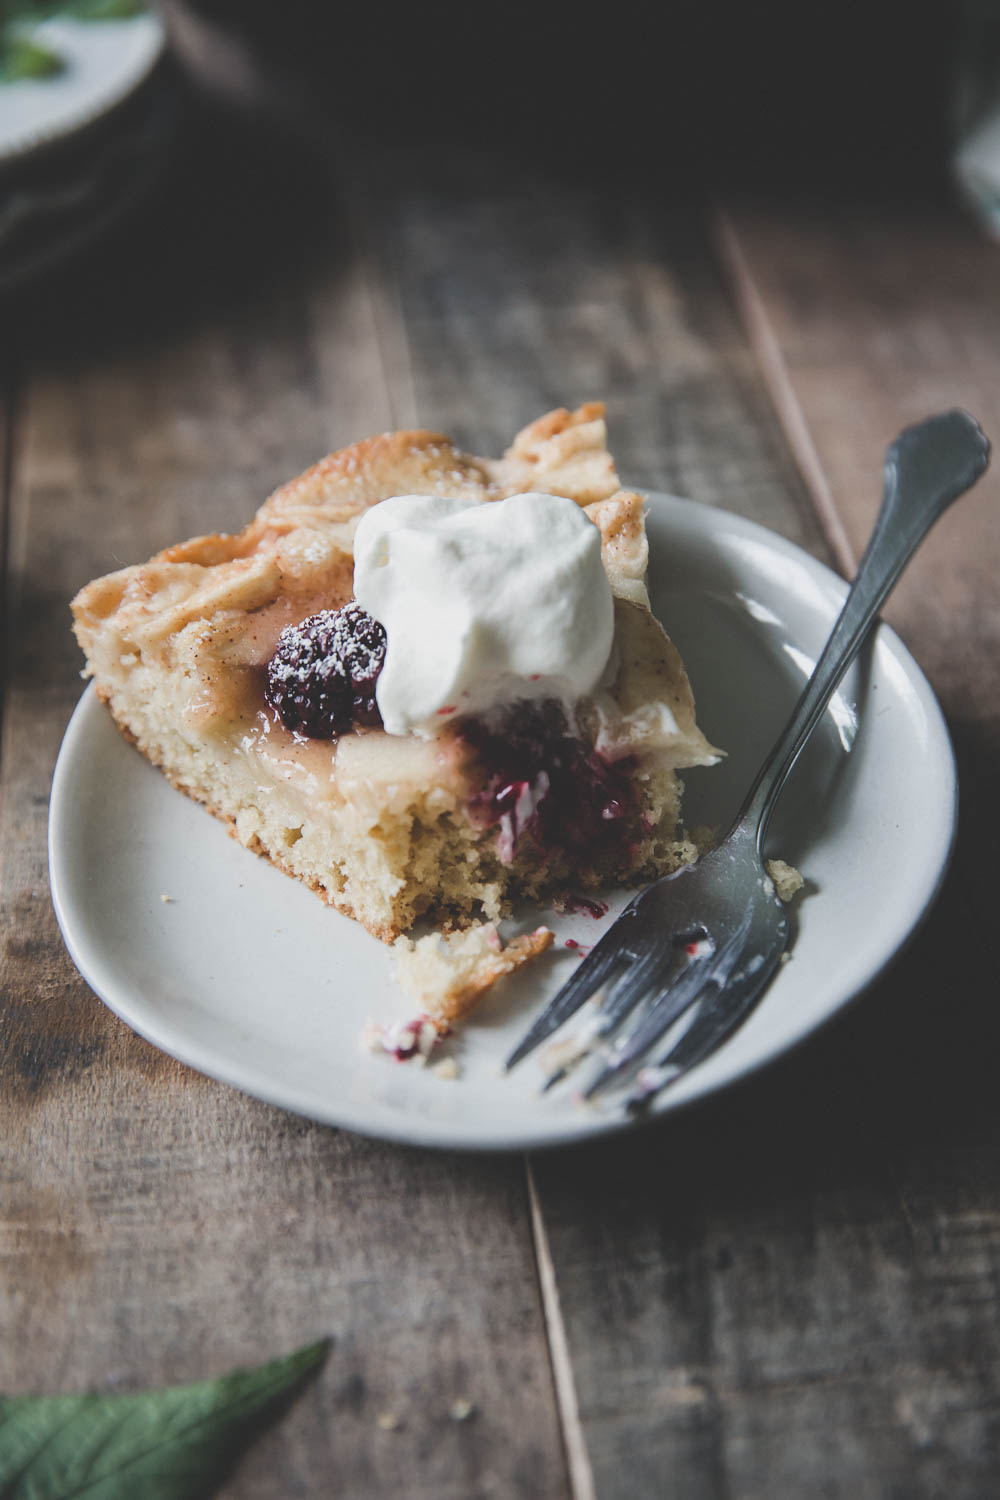 Bragg_Kate_Apple_Blackberry_Skillet_Cake-3376.jpg